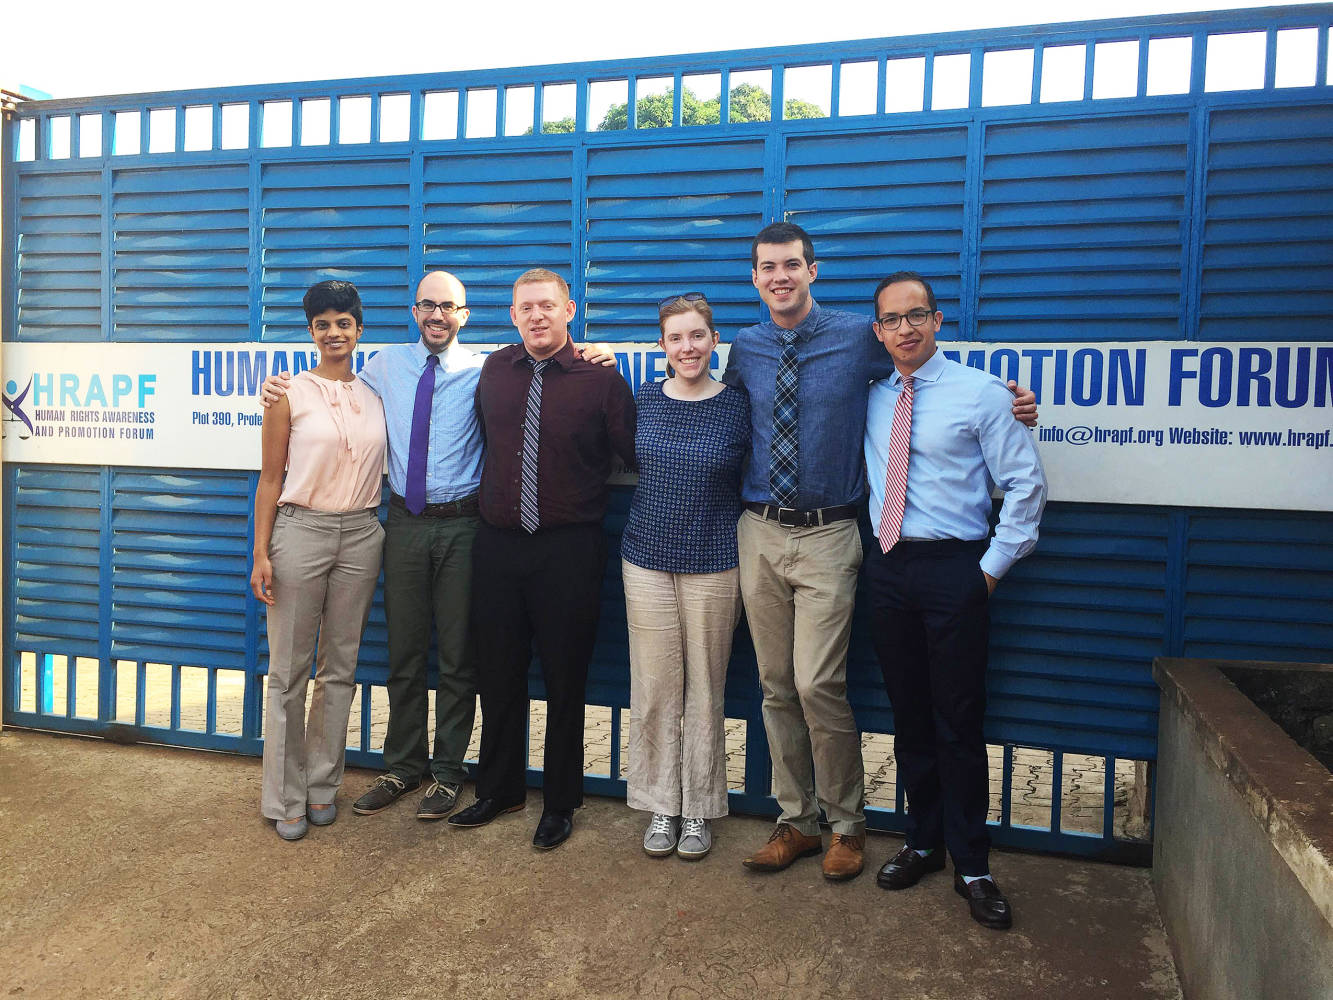 L-R: Maithreyi Nandagopalan '18, Charles Fletcher '18, Brandon Storm '18, Anna Crowe, Clinical Fellow in the International Human Rights Clinic, Brian Klosterboer '16, and Andres Caicedo '16 stand for photo at the Human Rights Awareness and Promotion Forum (HRAPF) in Uganda